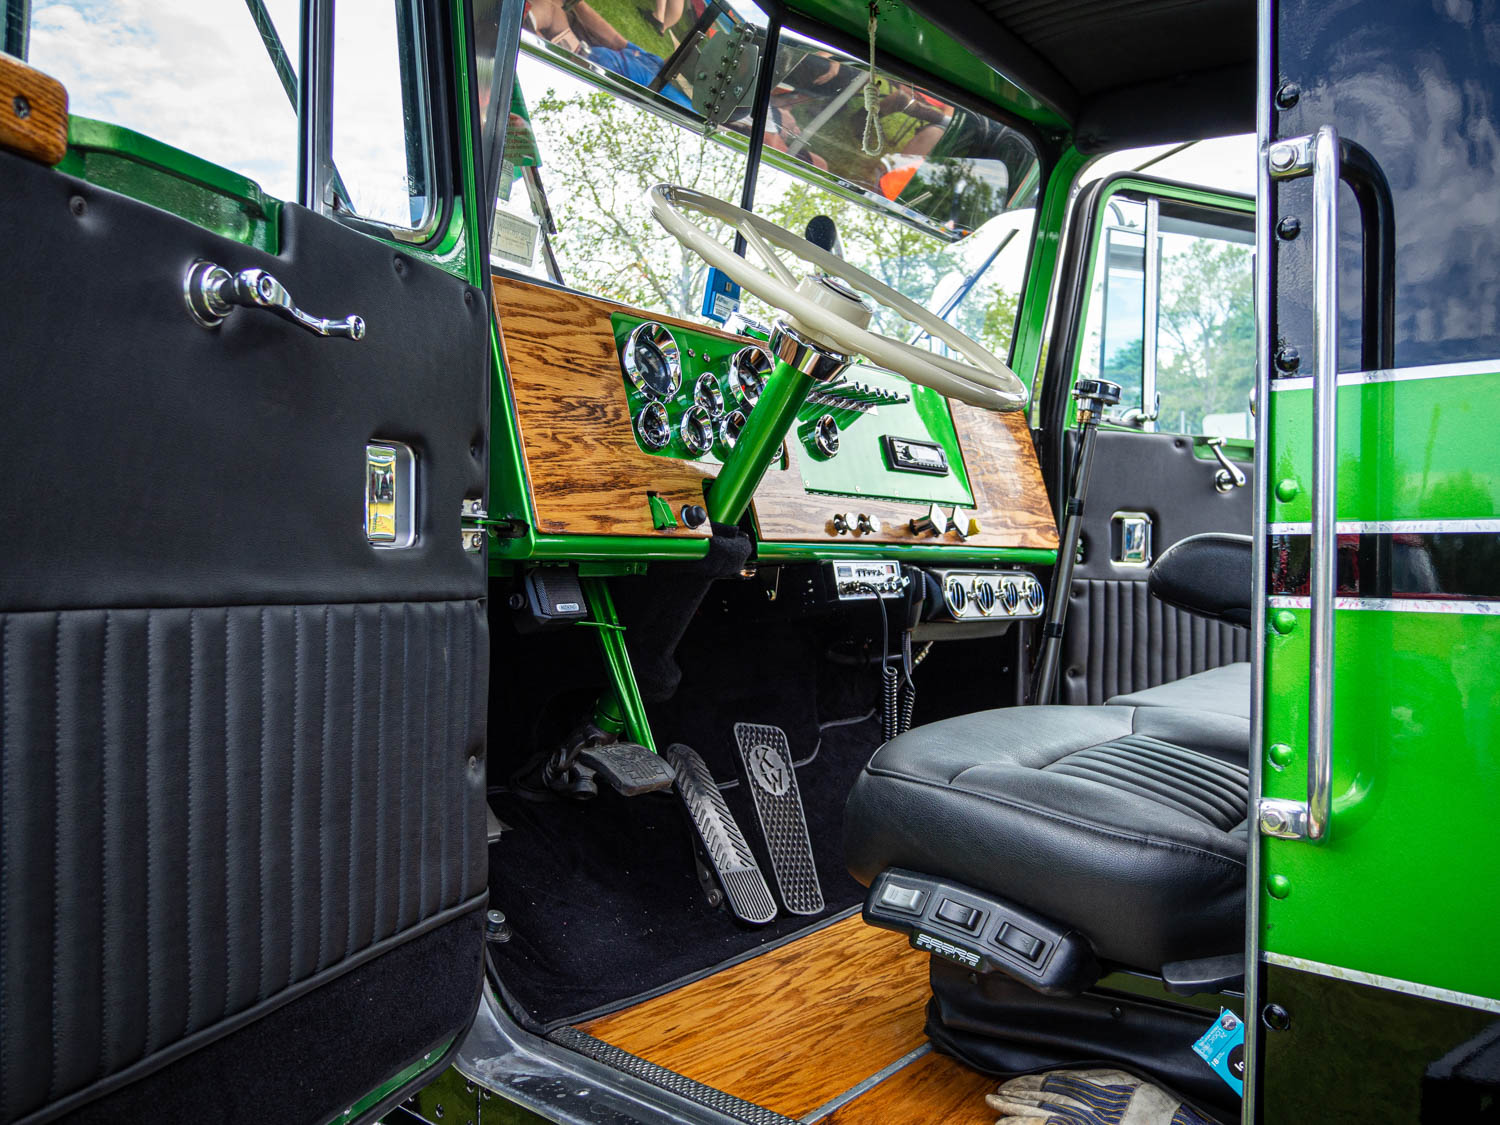 Bentley's veneer game is weak sauce compared to the oak woodwork throughout this 1974 Kenworth 900A.